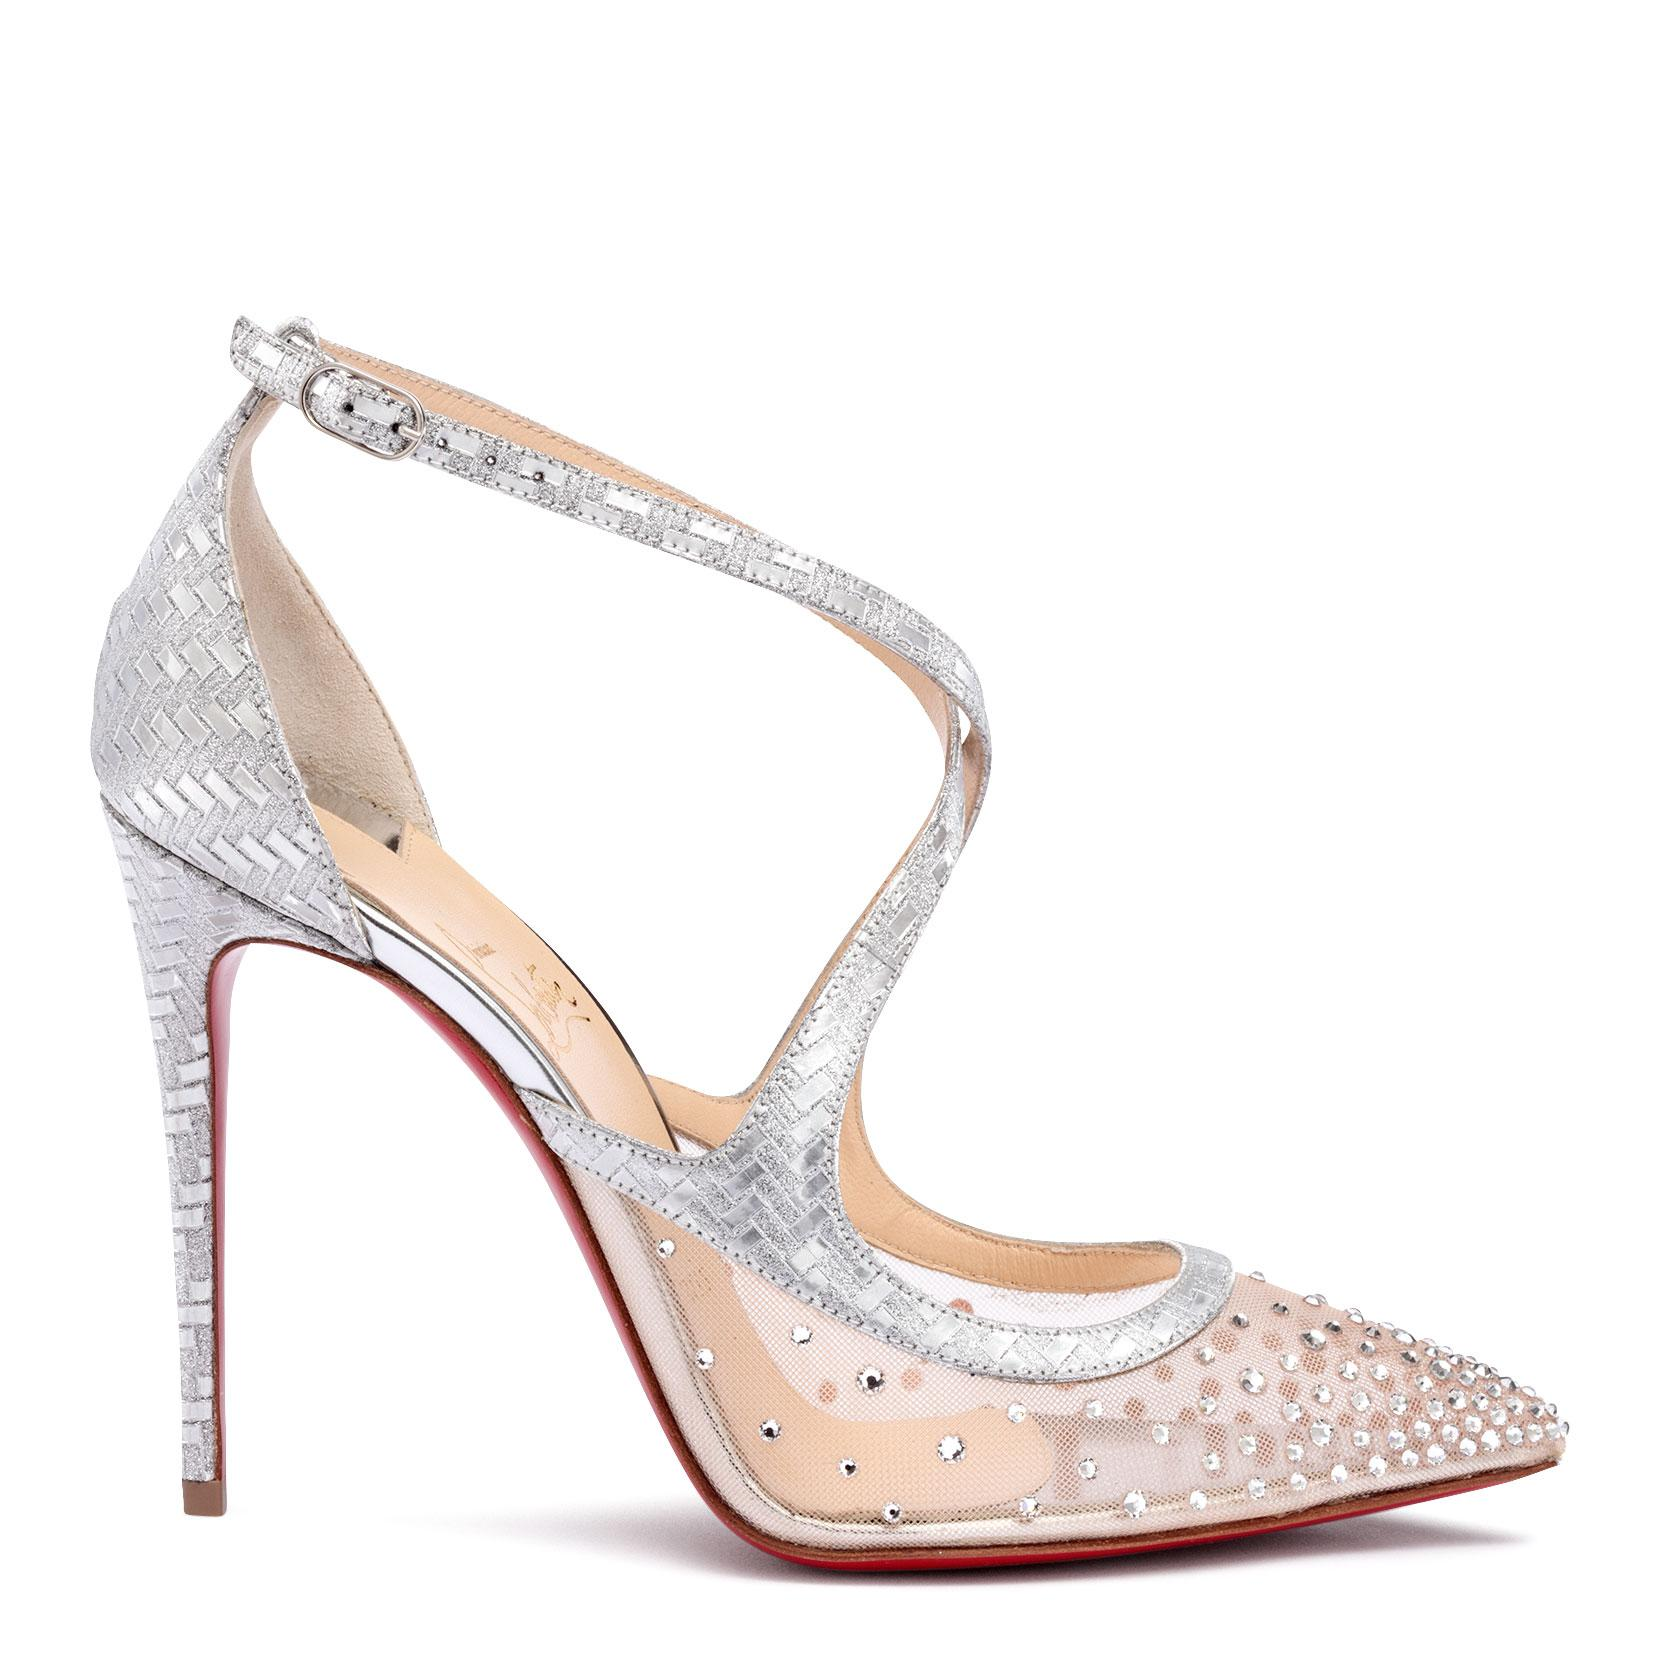 05b6666369a Lyst - Christian Louboutin Twistissima Strass 100 Pumps